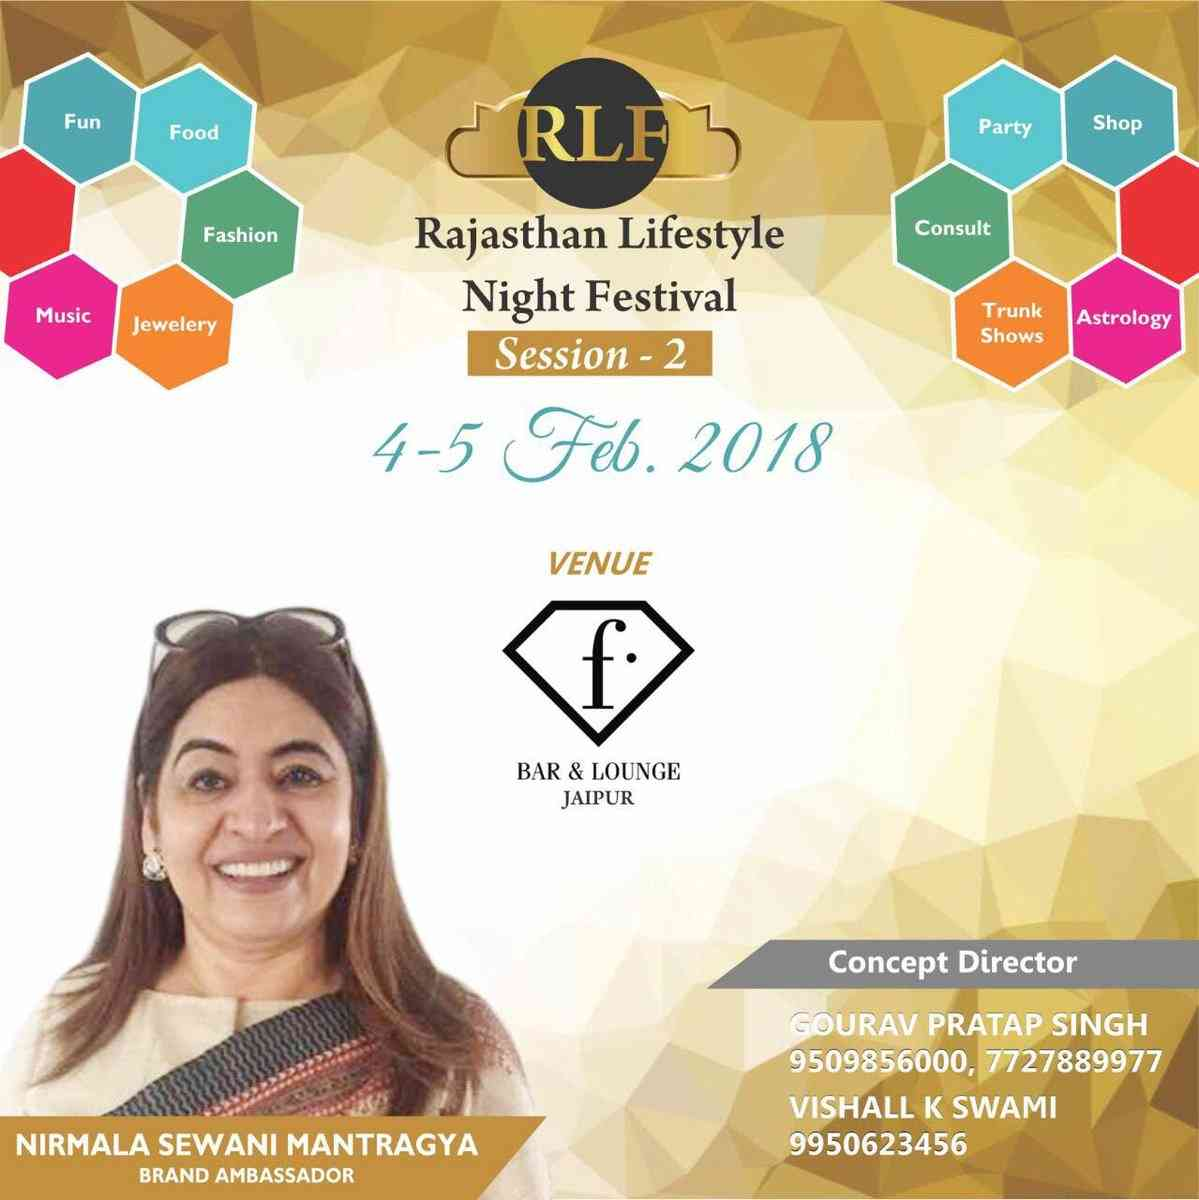 Rajasthan Lifestyle Night Festival Season 2